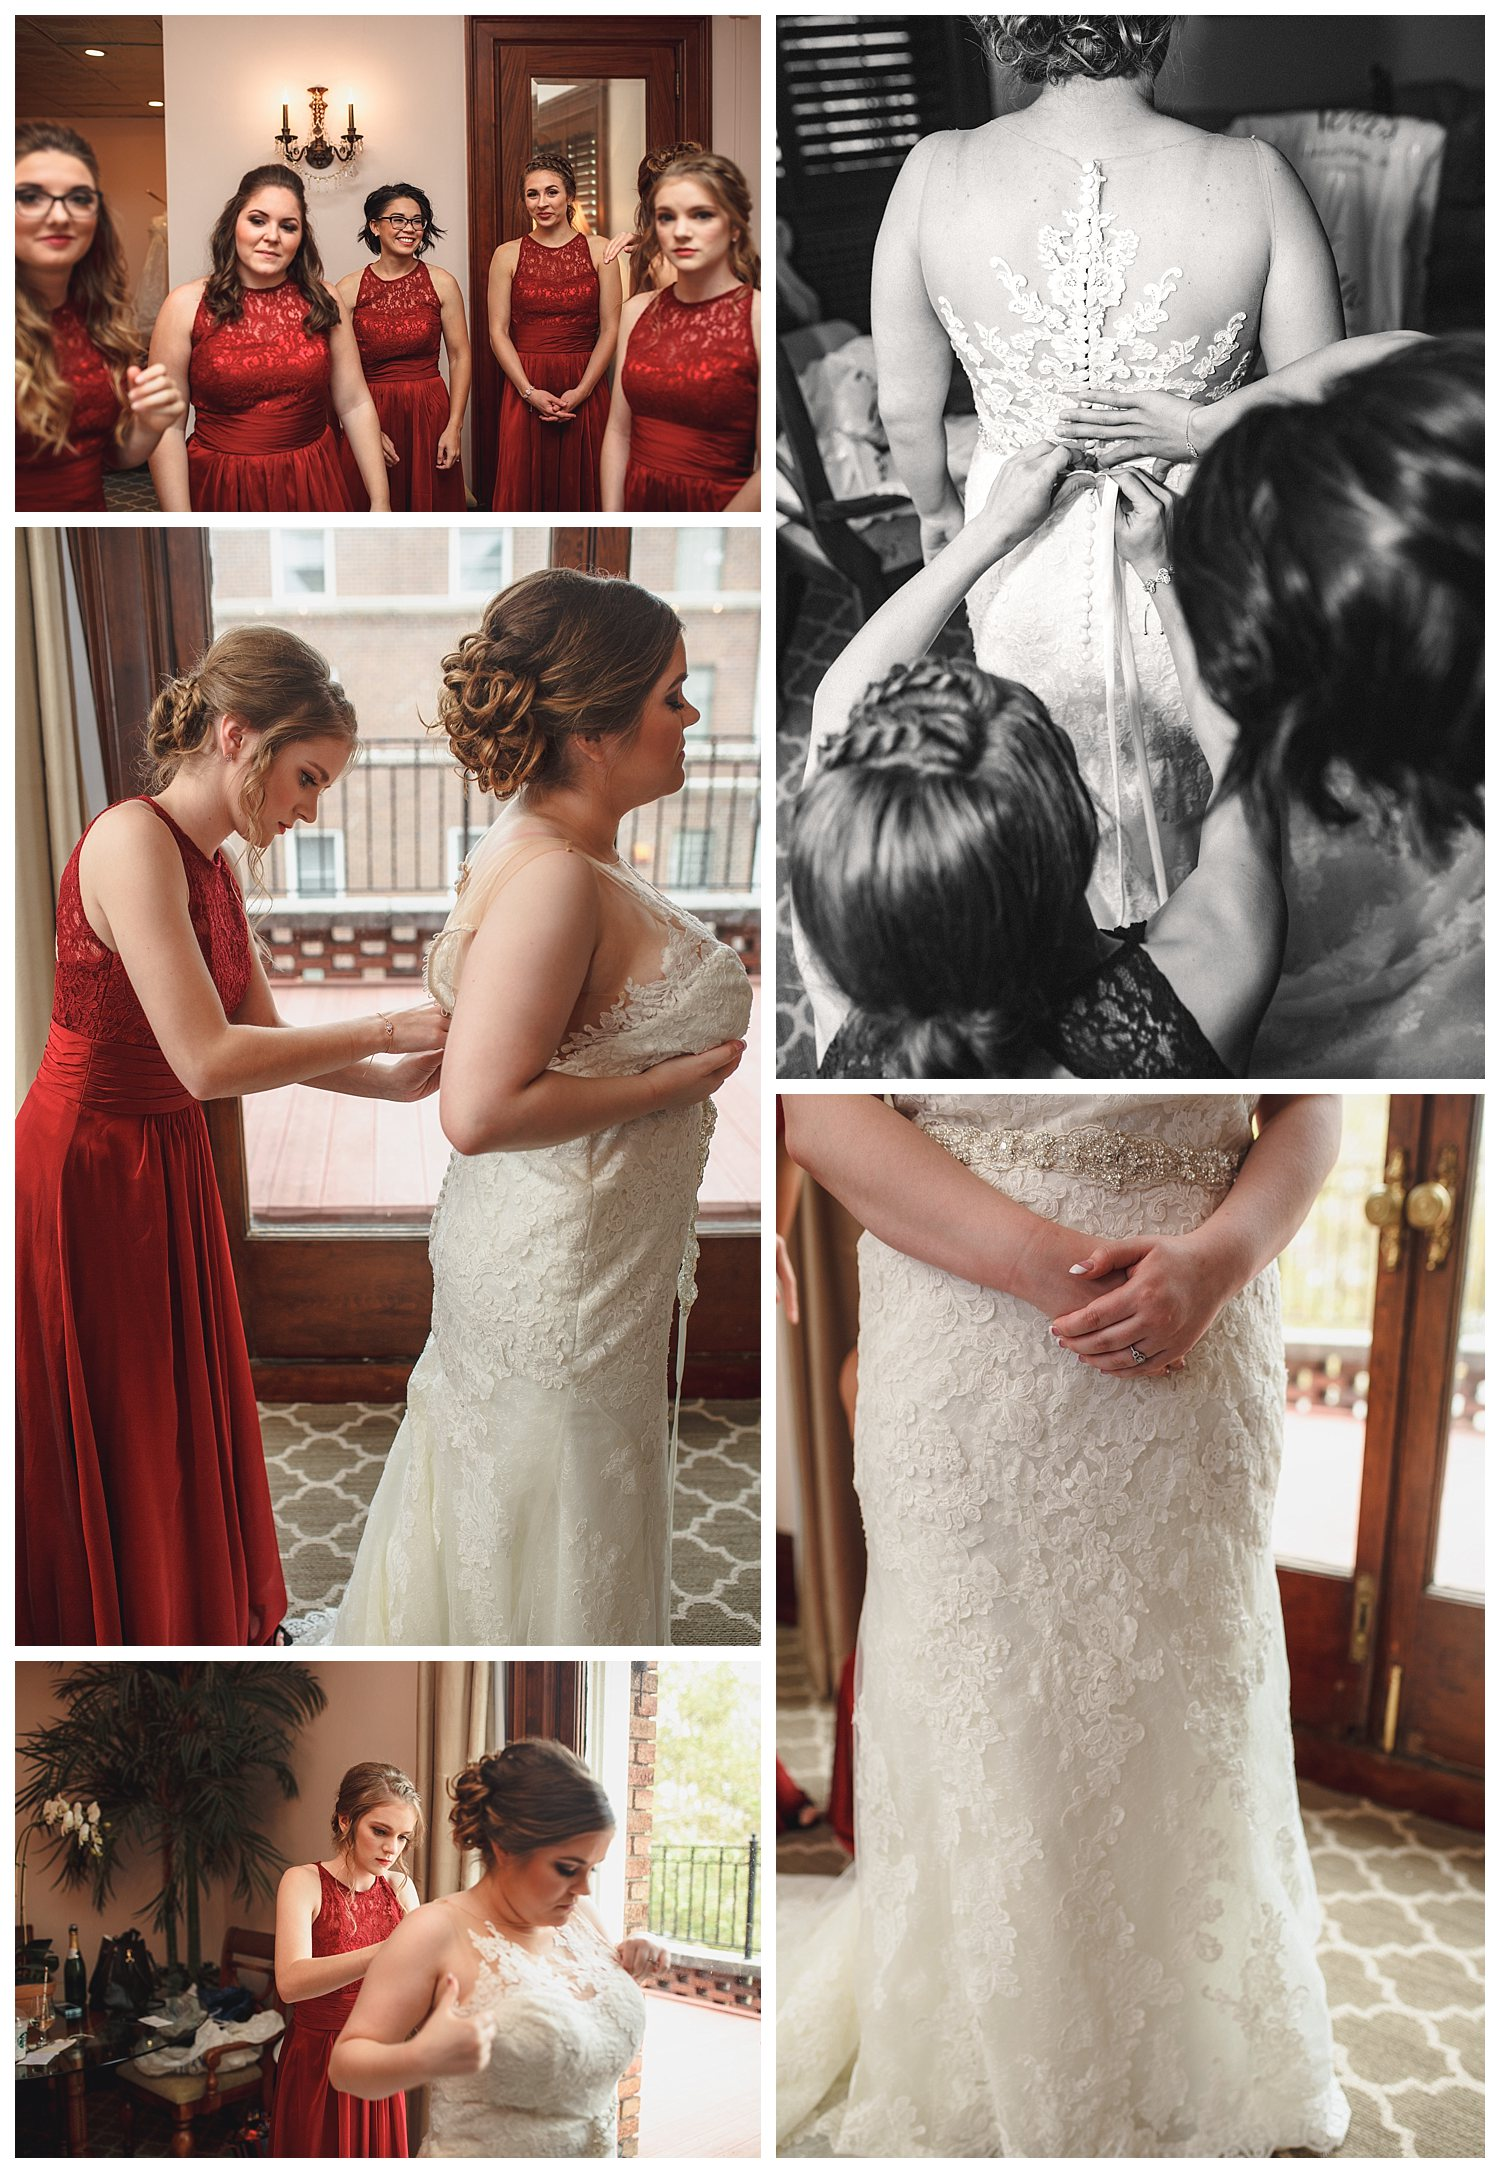 Kelsey_Diane_Photography_Loose_Mansion_Wedding_Photography_Kansas_City_Victor_Lyndsay_0115.jpg